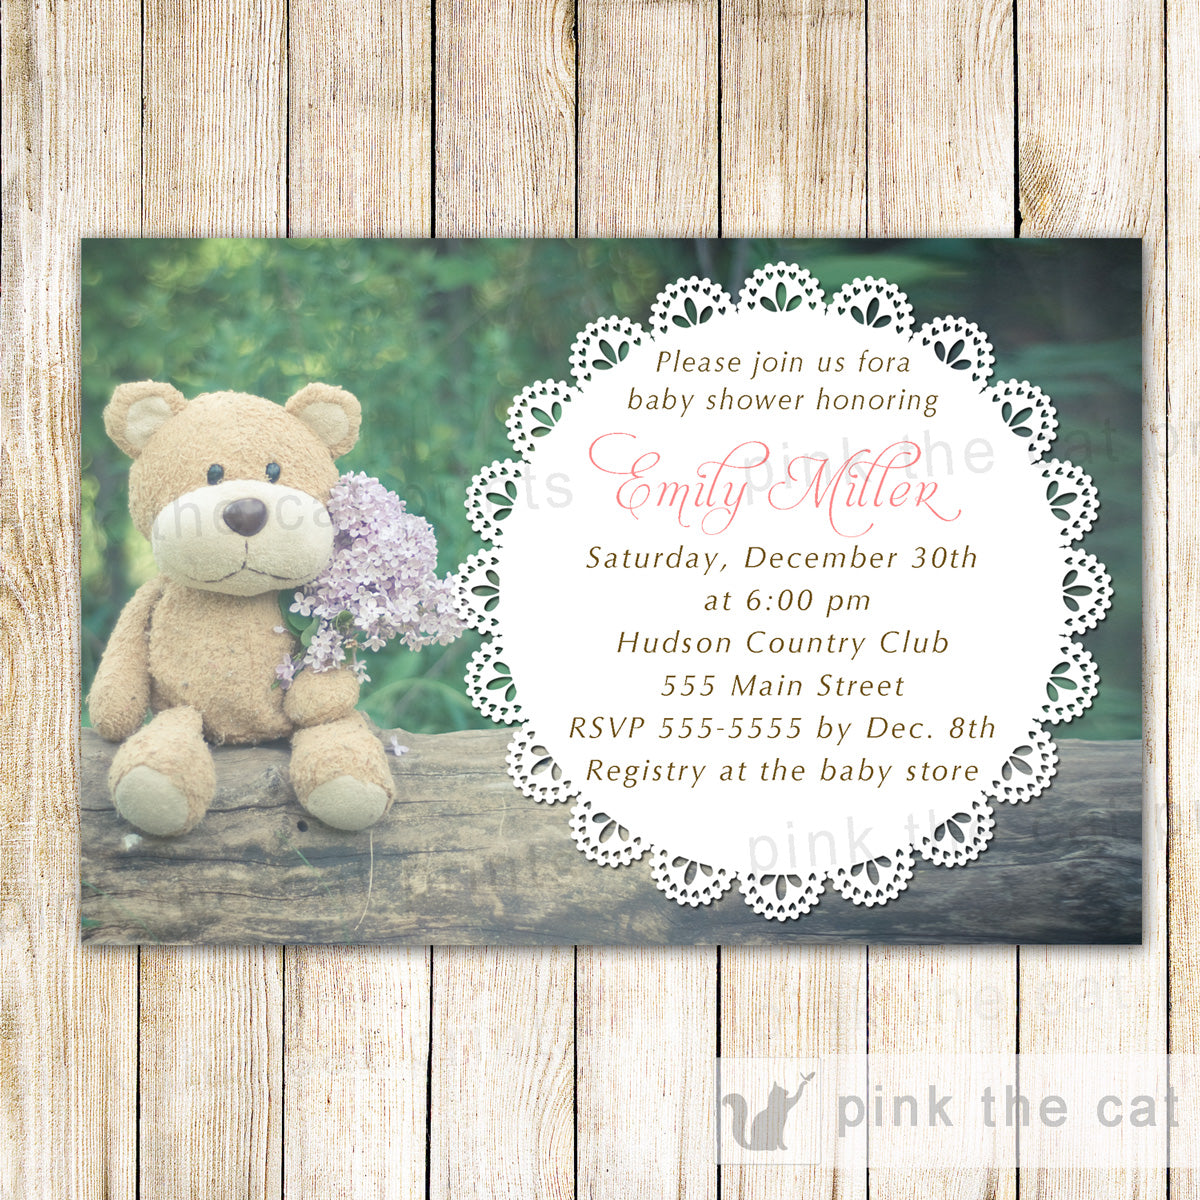 25 Printed Rustic Invitations Baby Shower Birthday Doily Lace – Pink ...